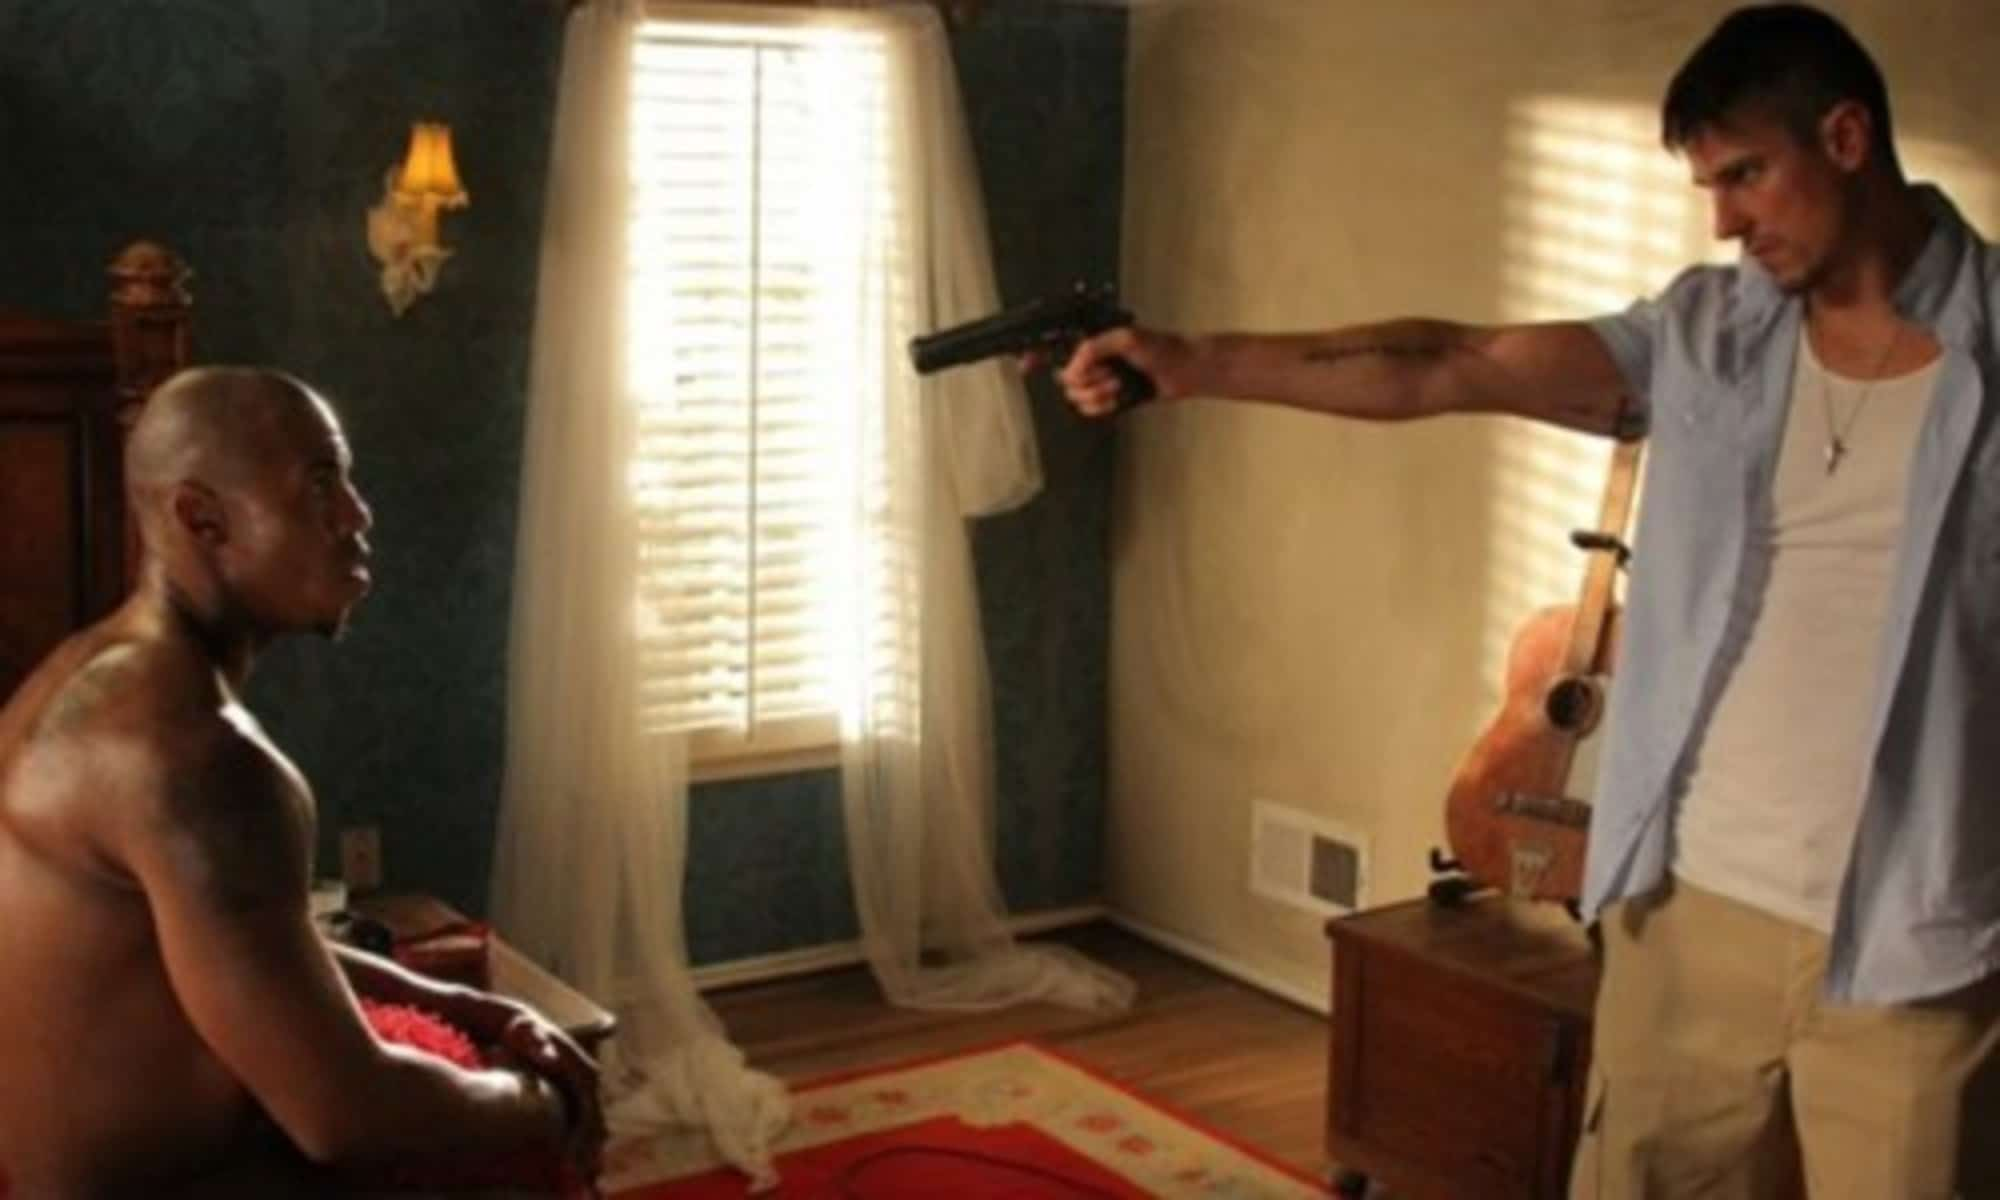 The Adulterers: Couple Caught Cheating And Are Held At Gunpoint..But There's More